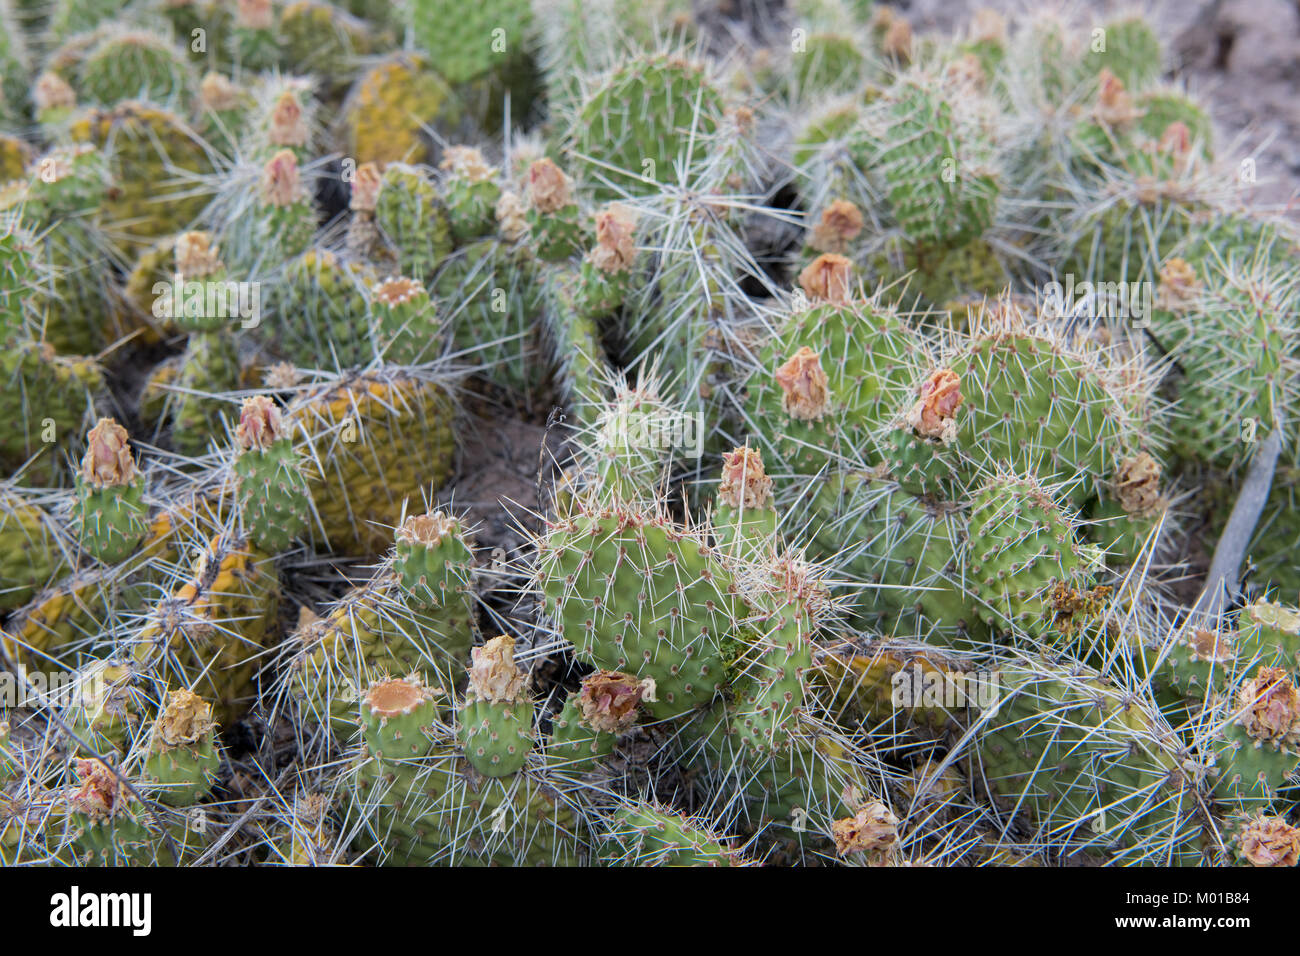 Cactus Bush with Thorns Wide Shot in Desert - Stock Image